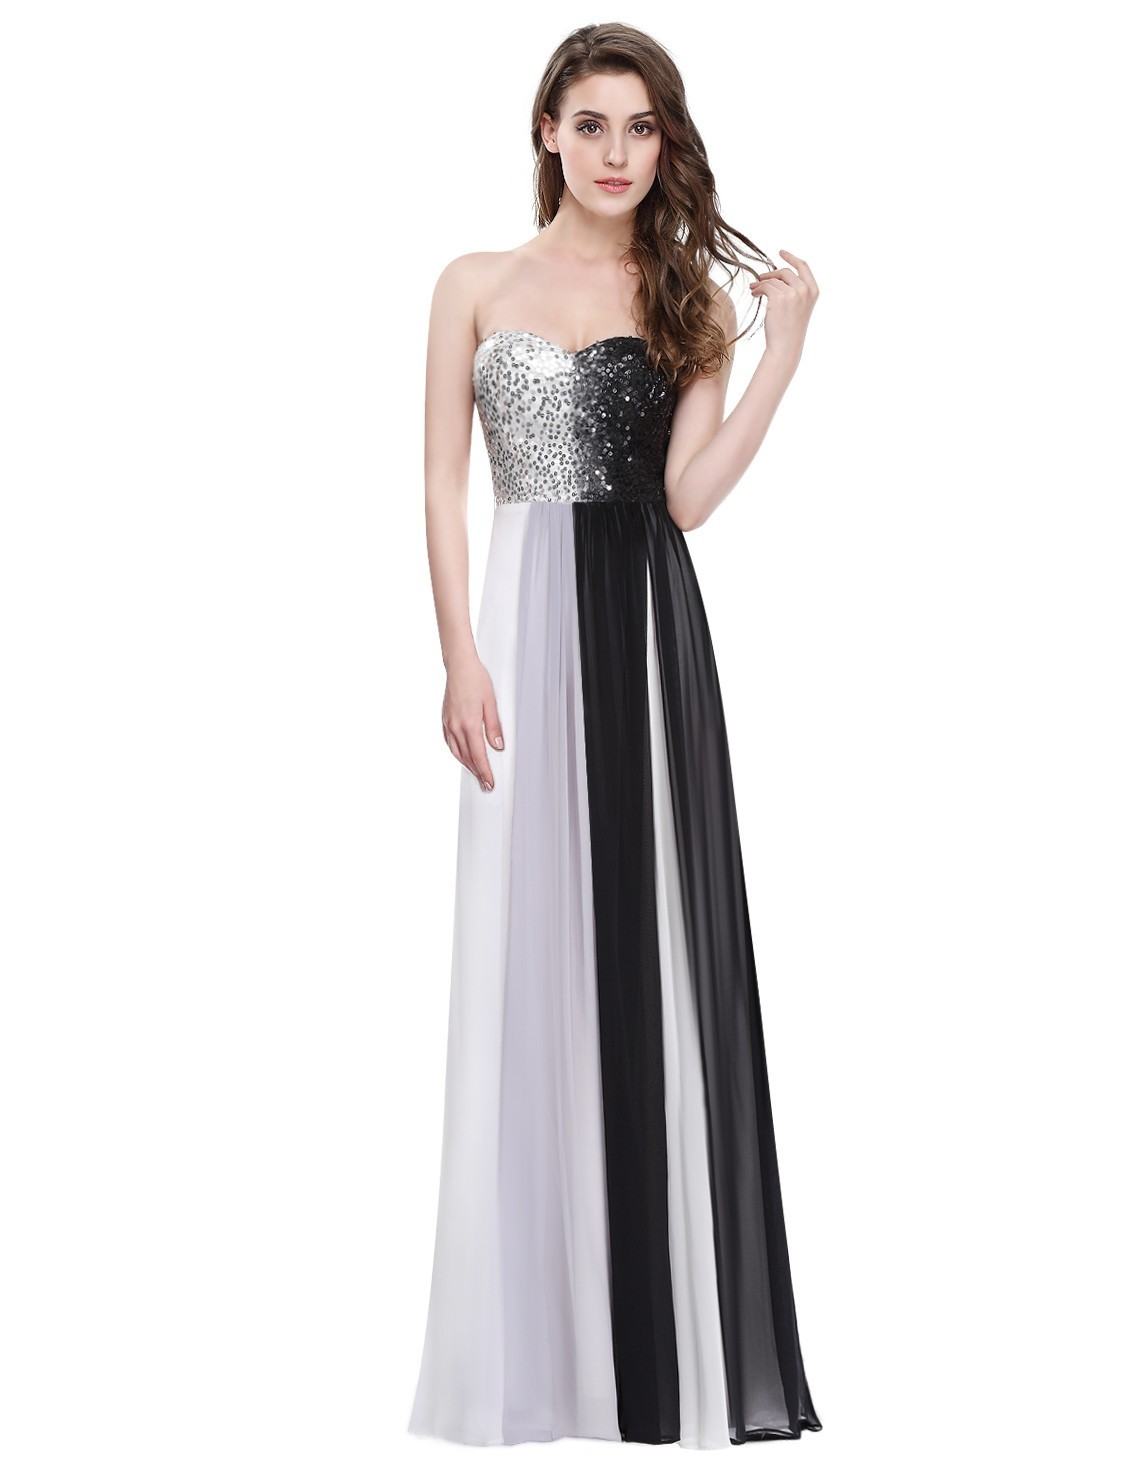 【日本未入荷】Long Strapless Sequin Prom Dress_H-215